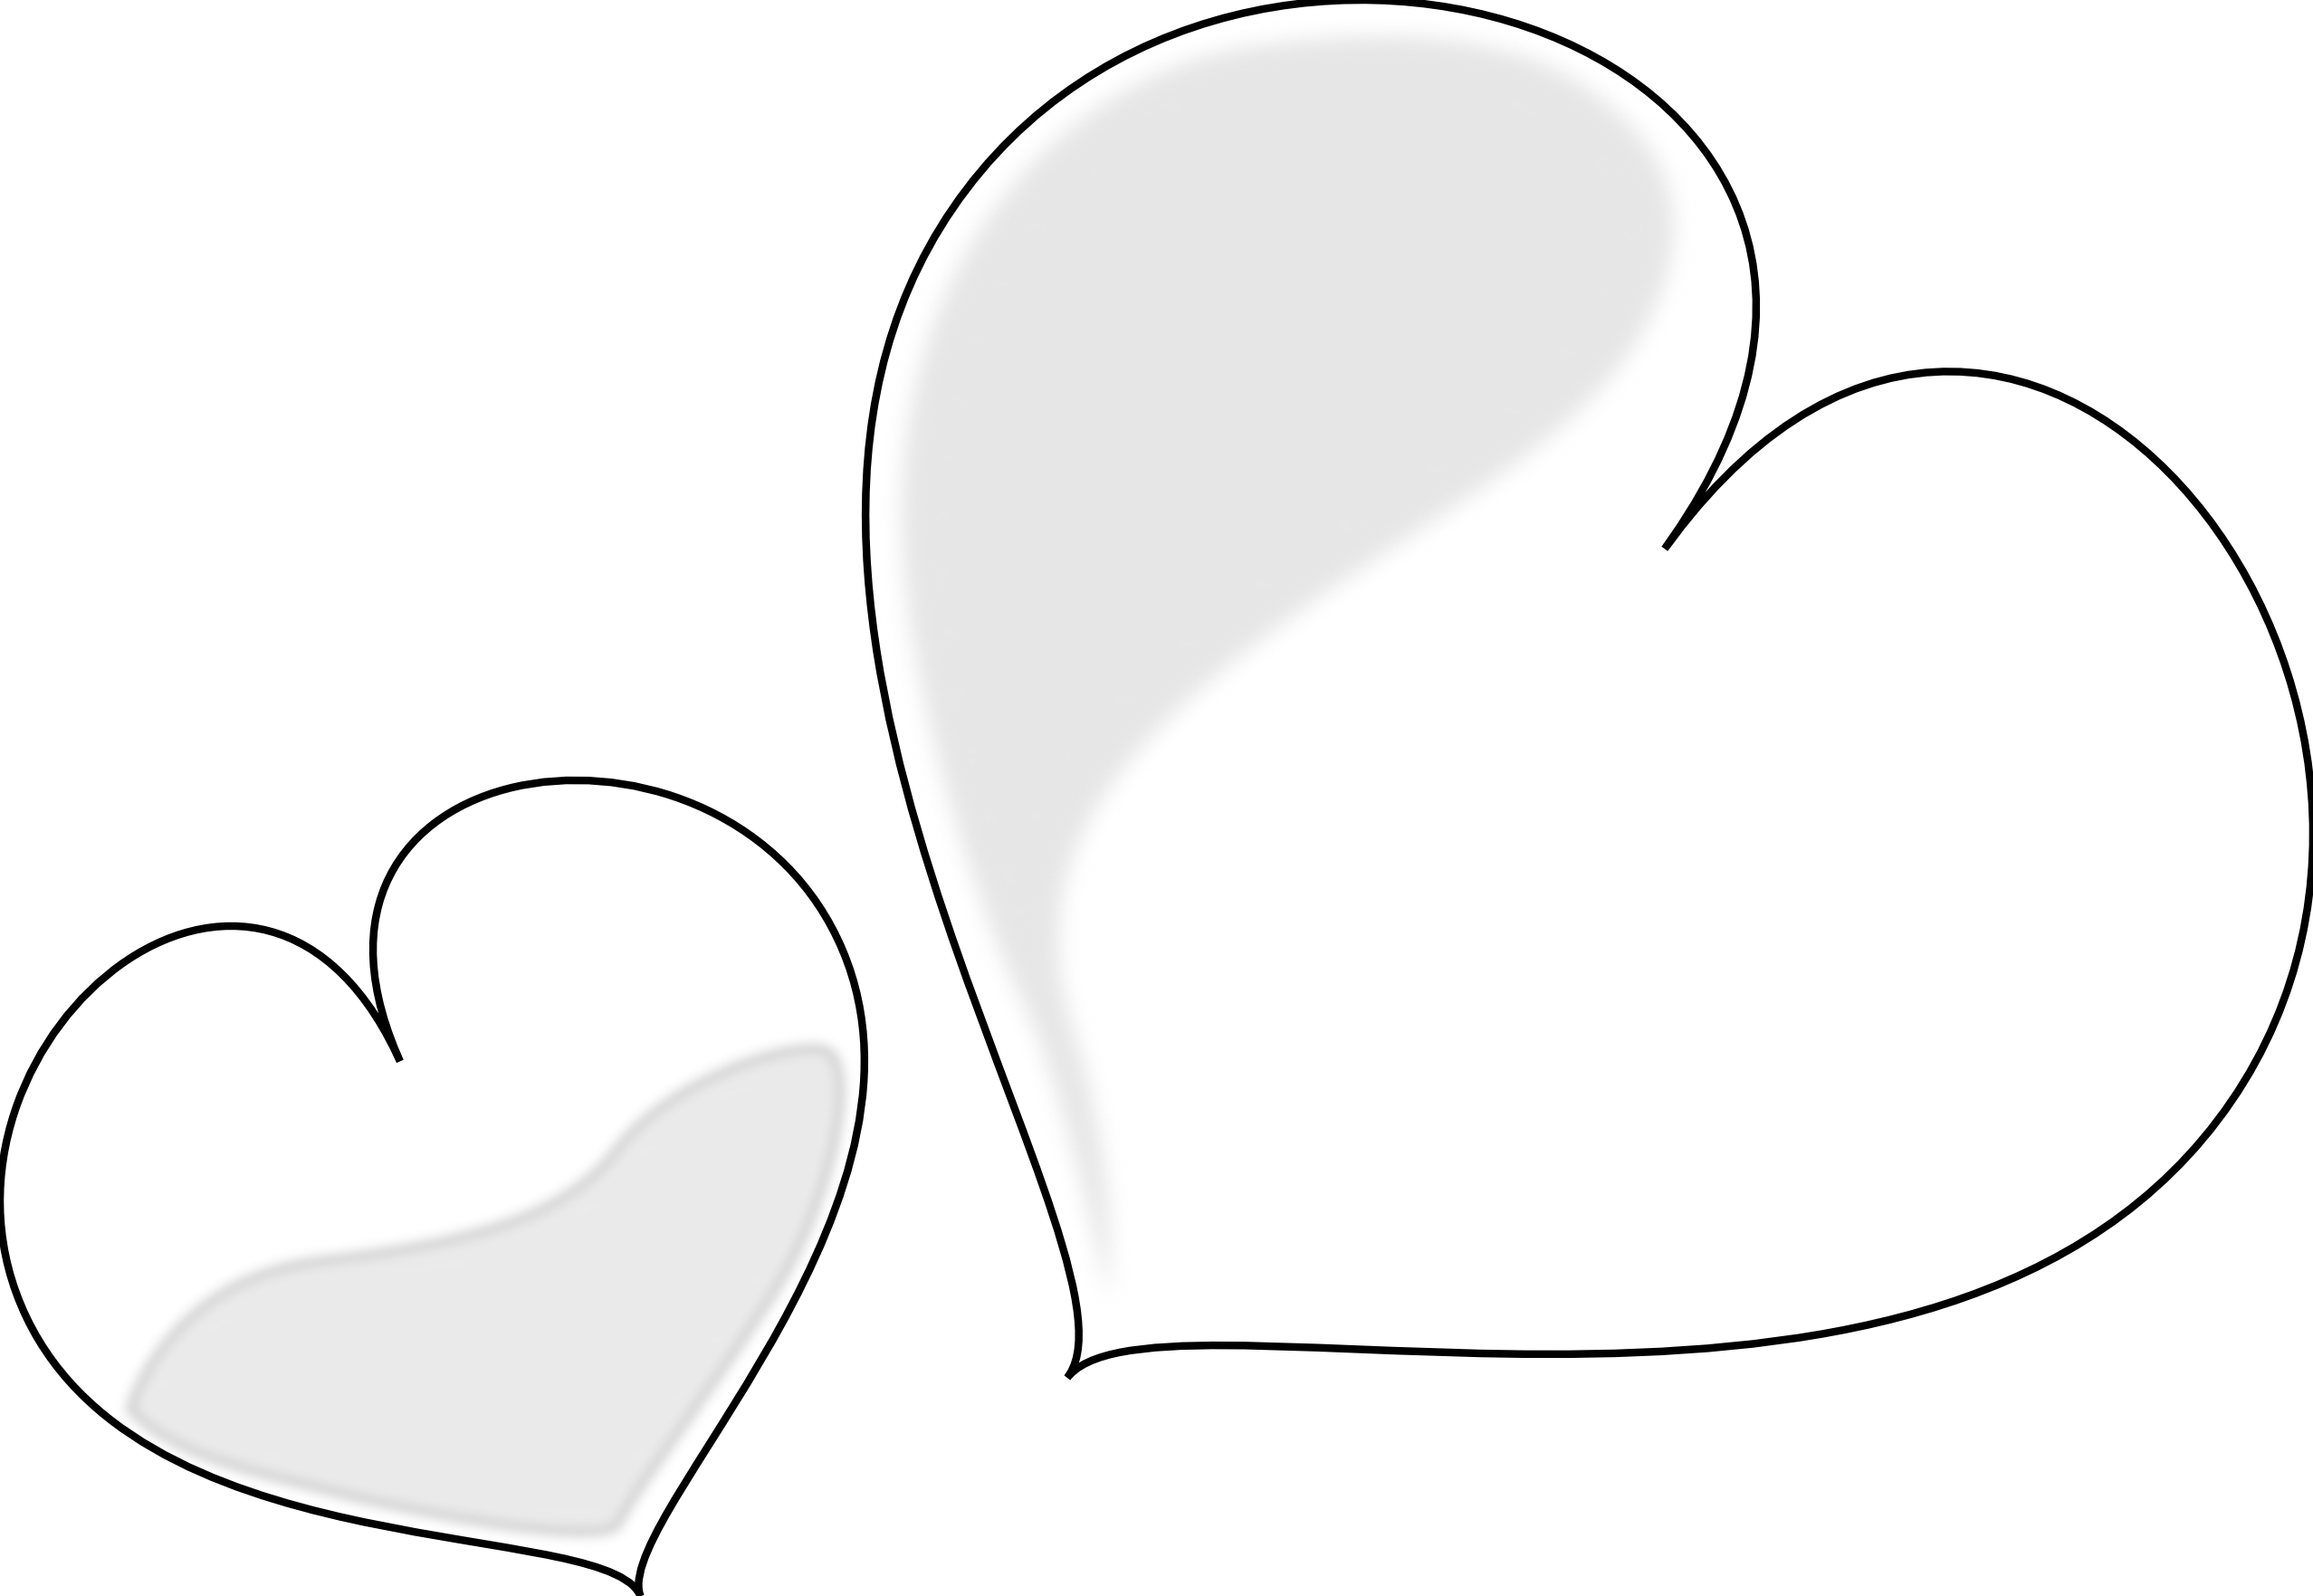 Heart clipart black and white free png black and white library Heart black and white heart clipart black and white heart clip art ... png black and white library